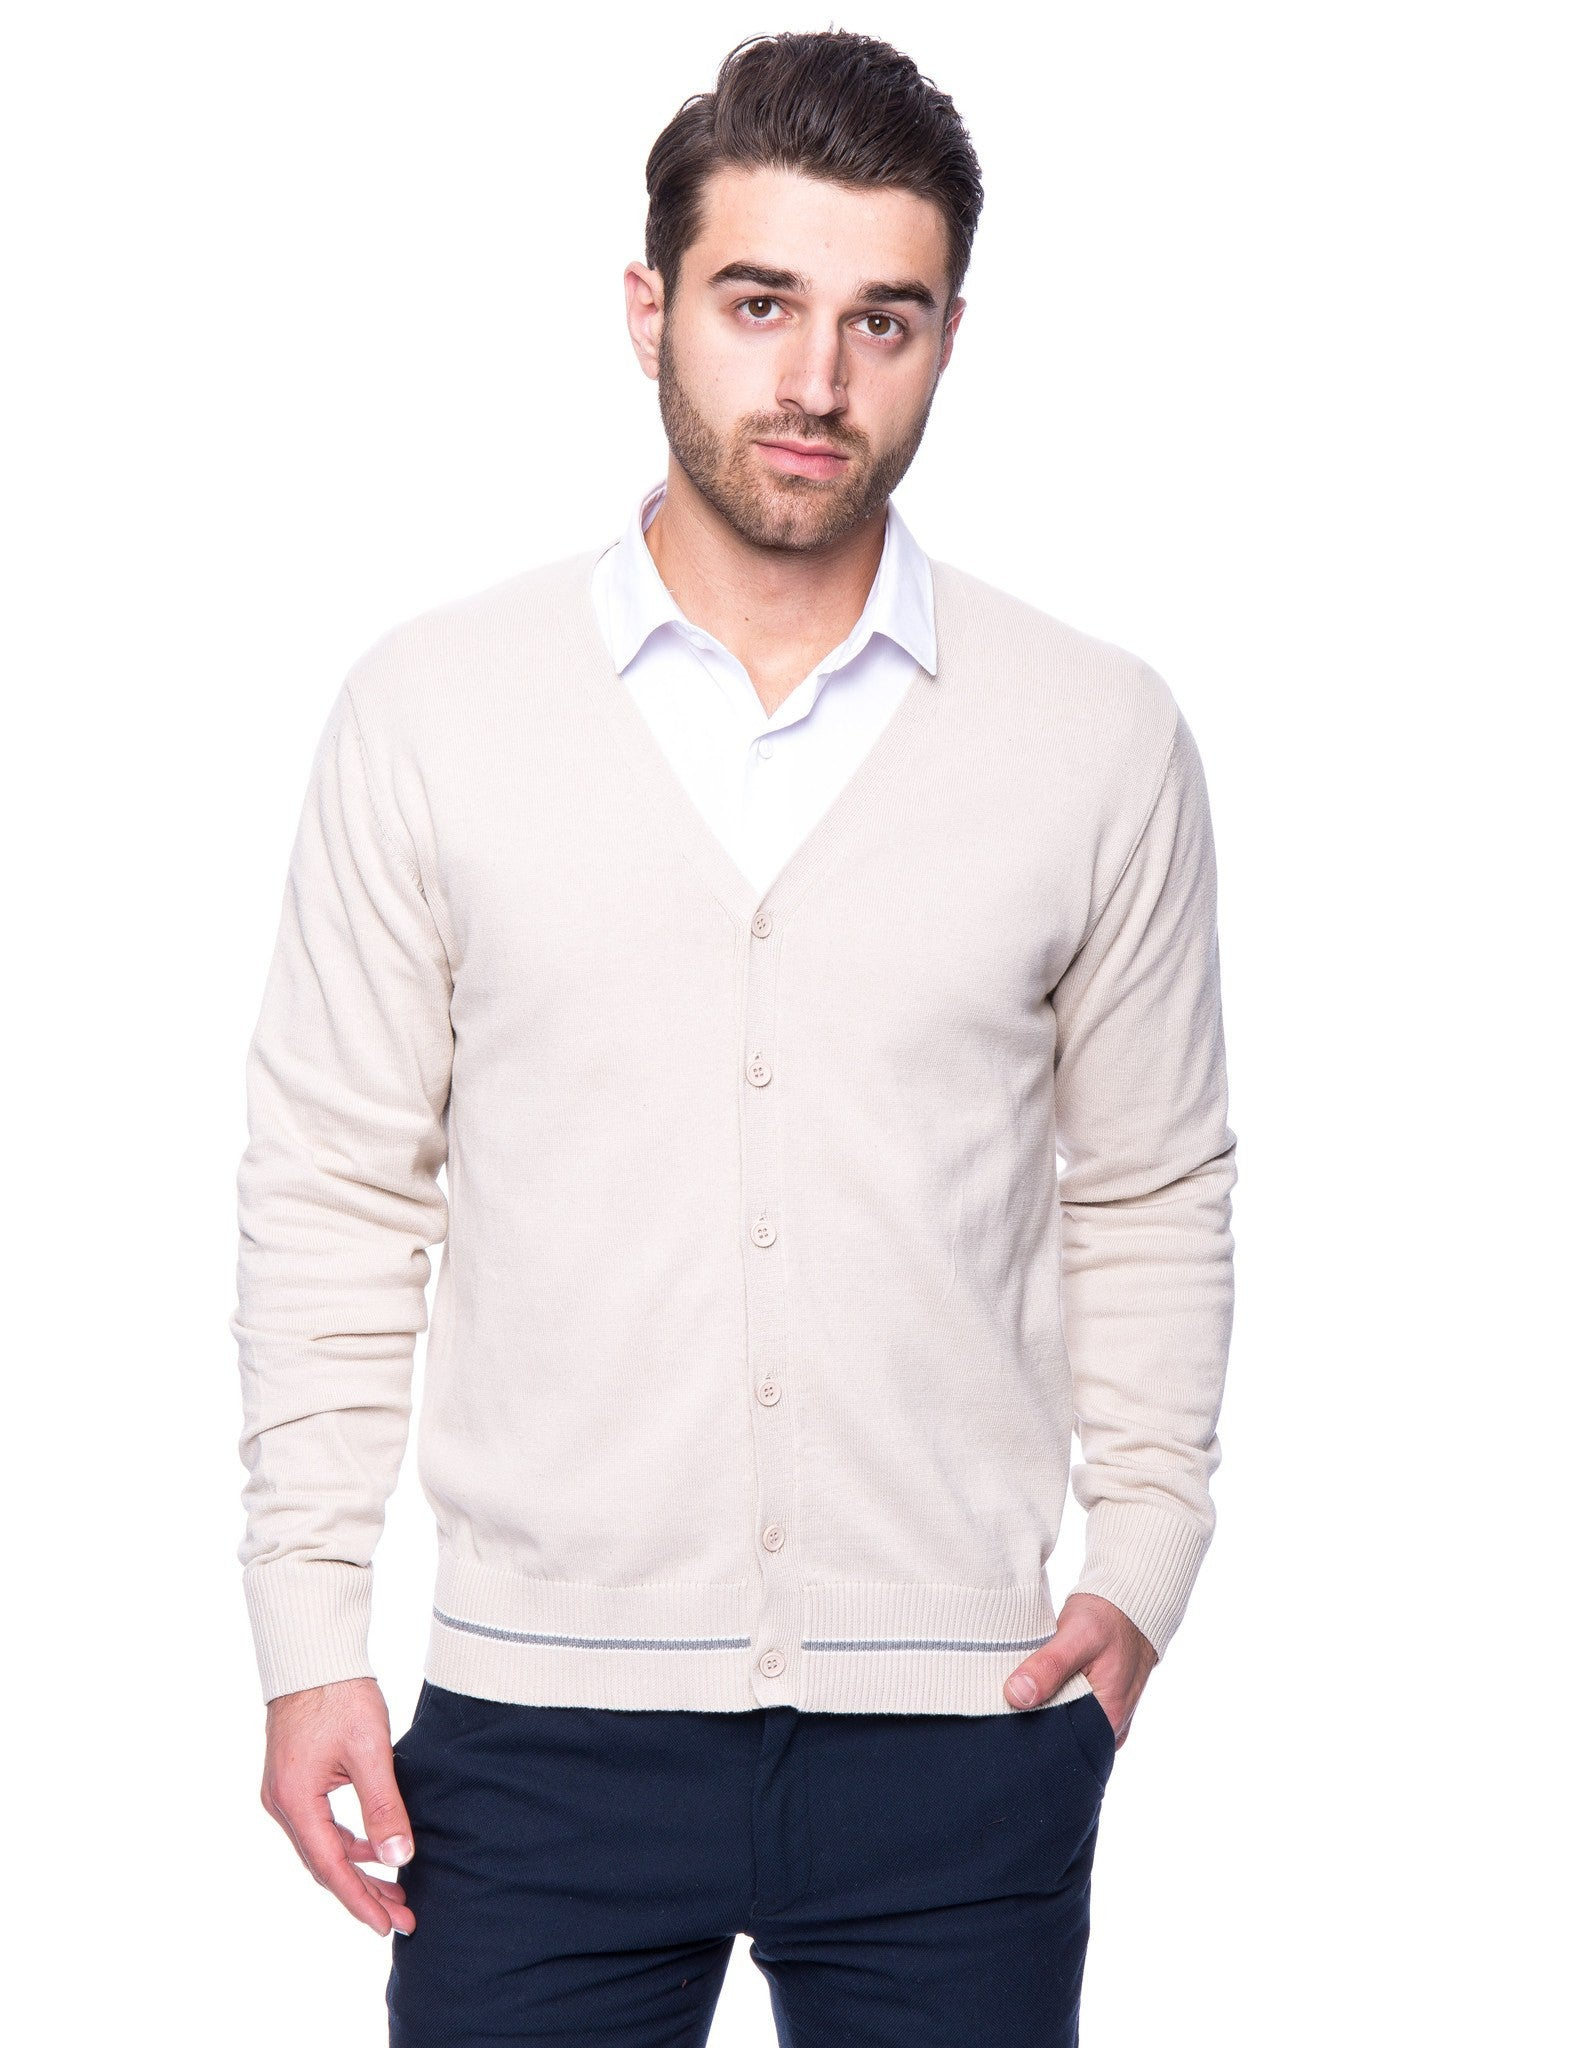 100% Cotton Cardigan Sweater - Stone